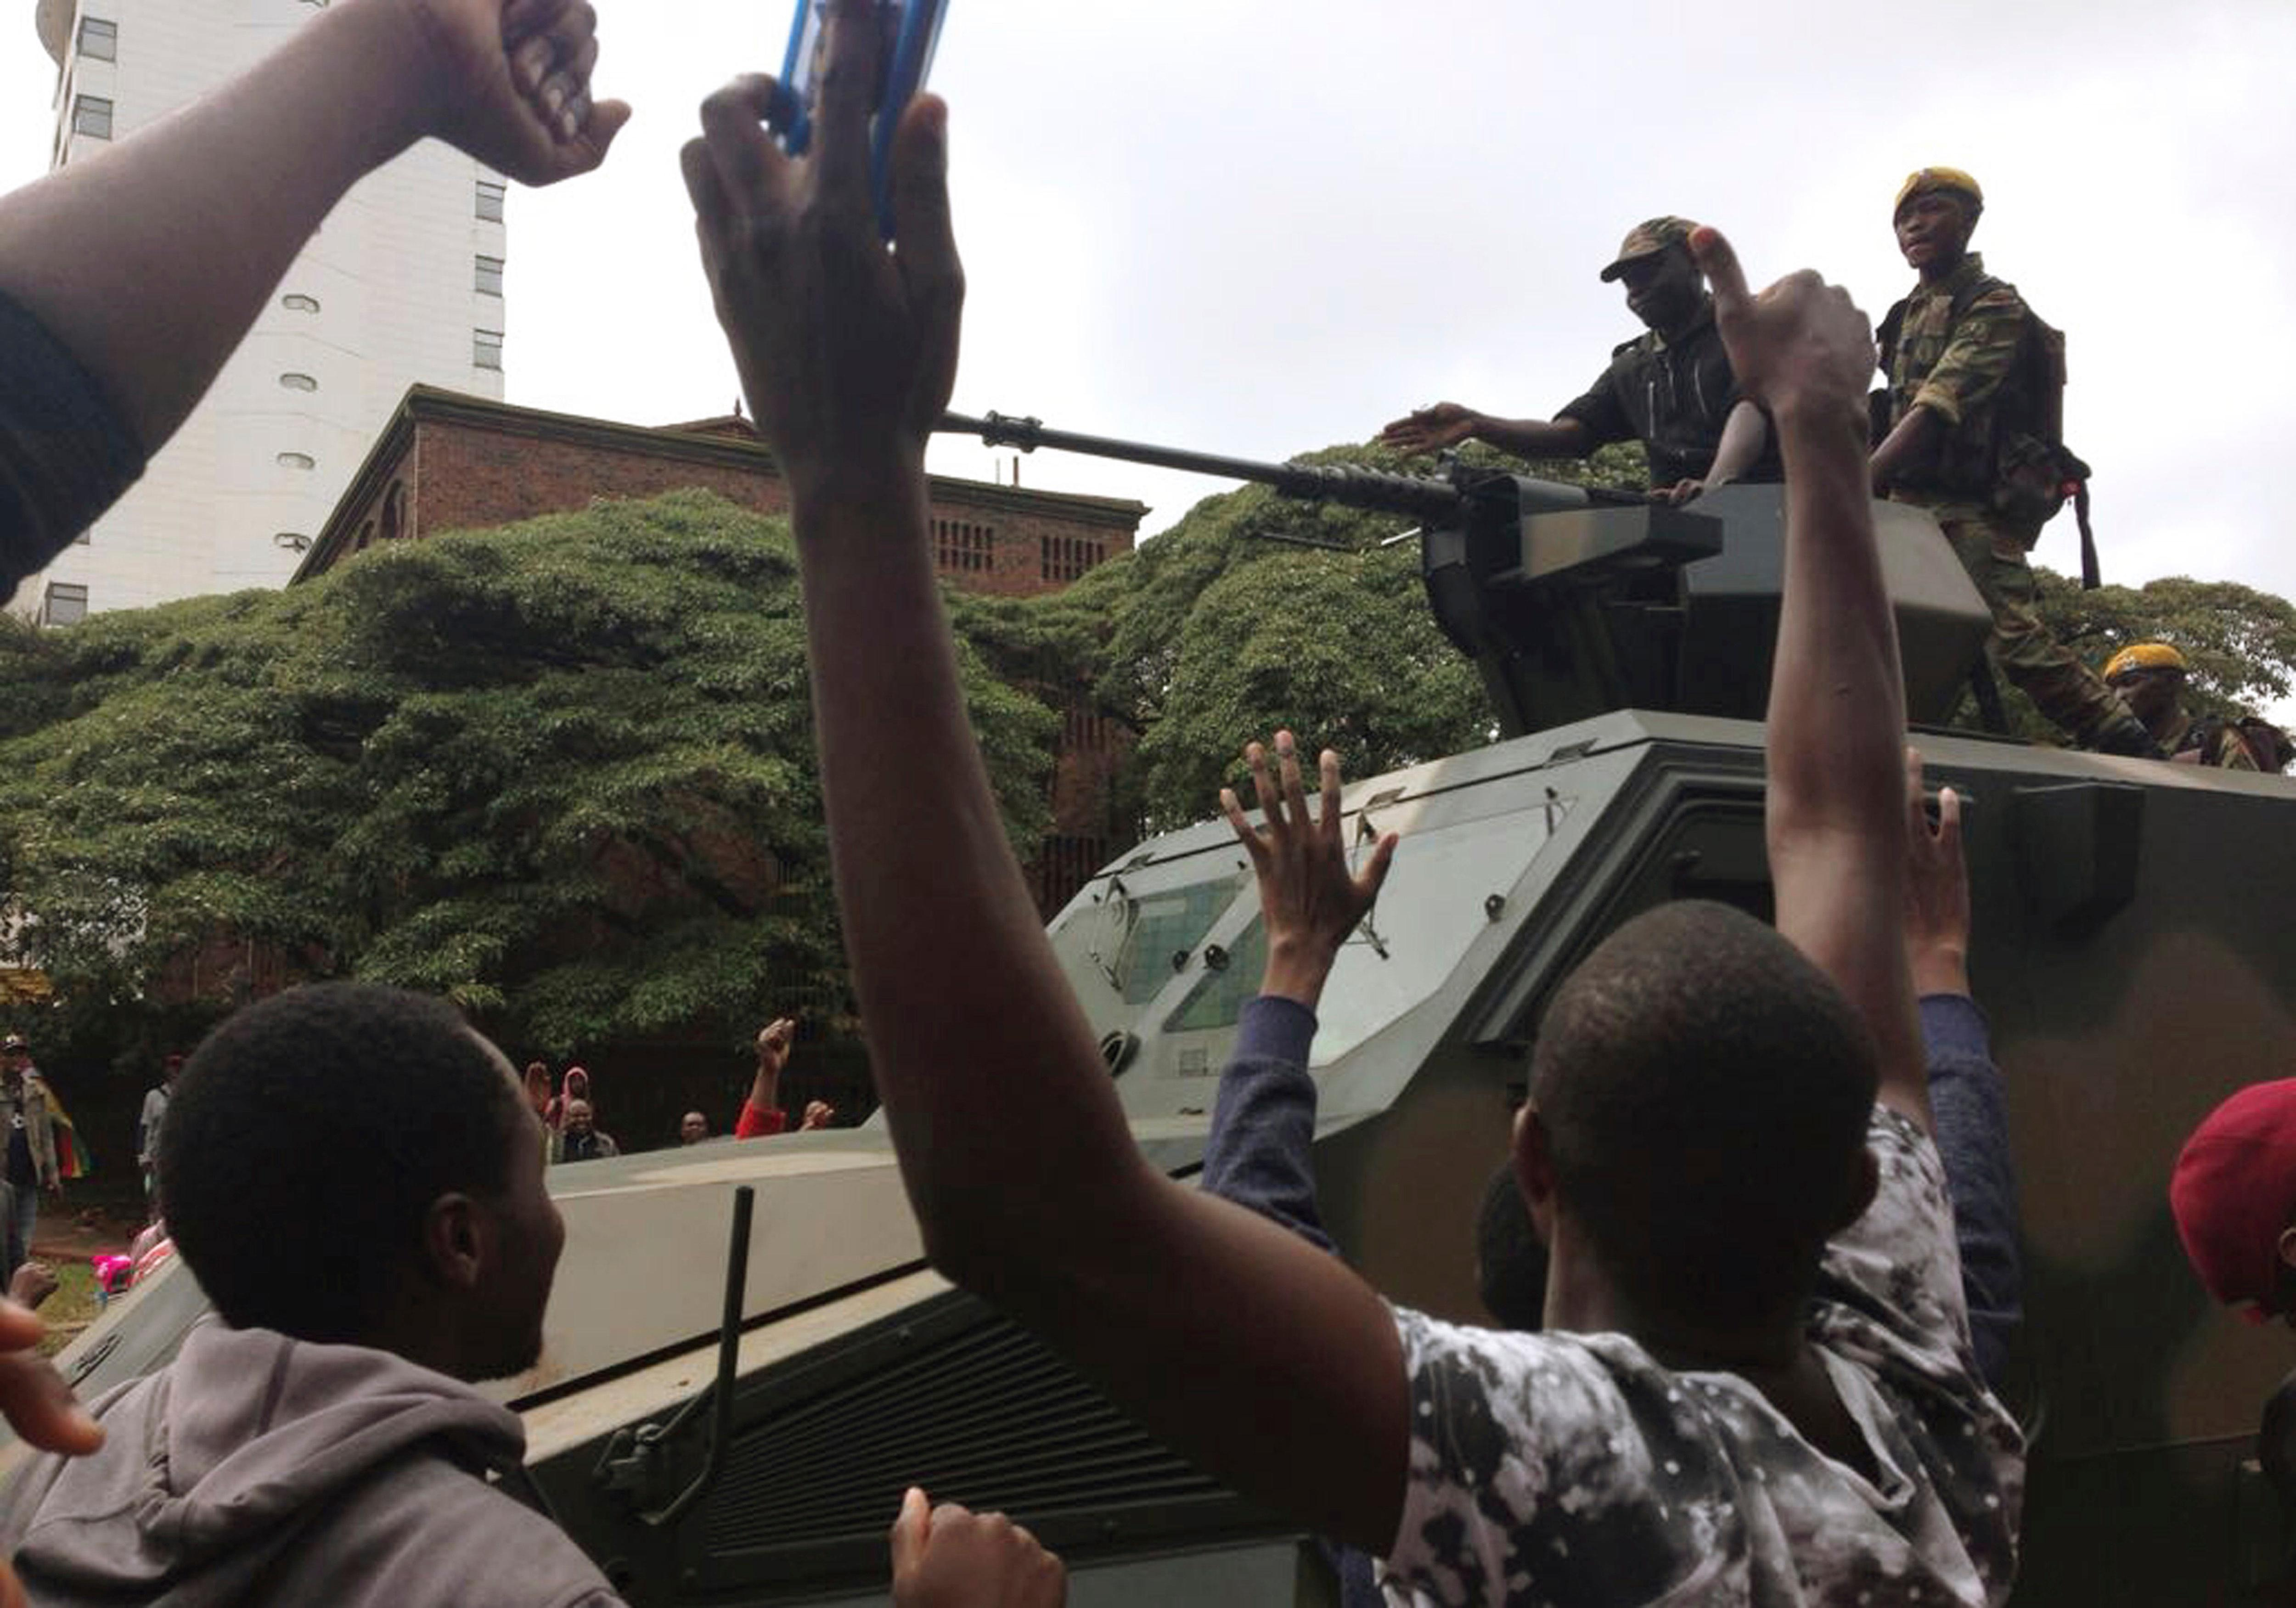 People begin to gather around a military vehicle in Harare Saturday, Nov. 18, 2017, demonstrating for the ouster of 93-year-old president Robert Mugabe who is virtually powerless and deserted by most of his allies. Zimbabwe's generals, have placed Mugabe under house arrest and have allowed him limited movement while talks on his exit from office unfold. (AP Photo/Christopher Torchia)